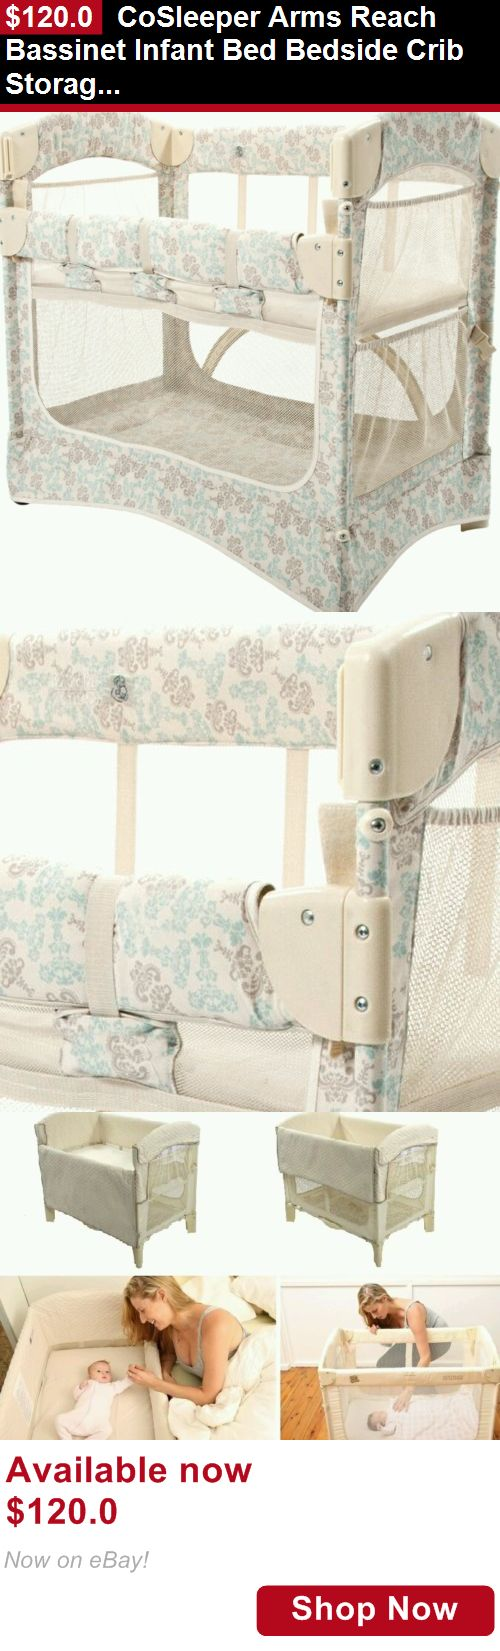 Special enclosed crib for premature babies - Baby Co Sleepers Cosleeper Arms Reach Bassinet Infant Bed Bedside Crib Storage With Design